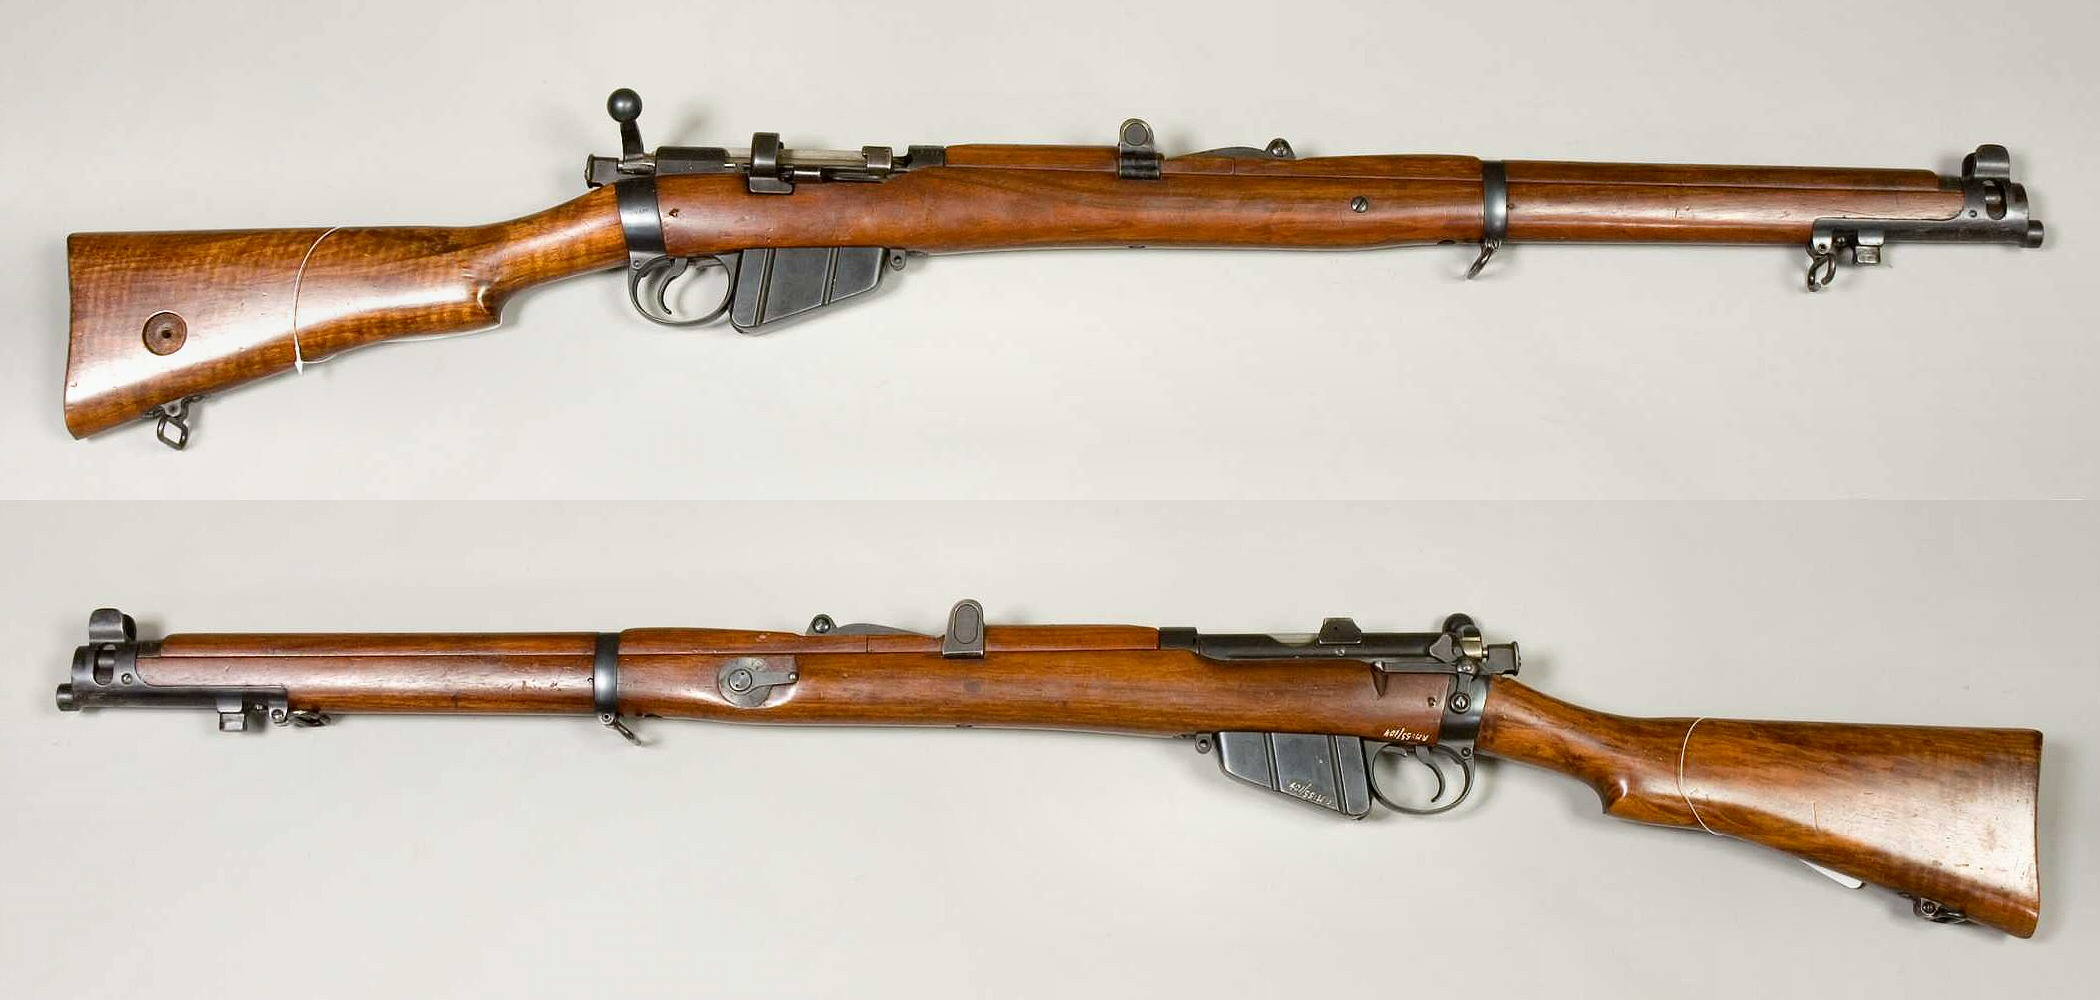 Short Magazine Lee-Enfield Rifle